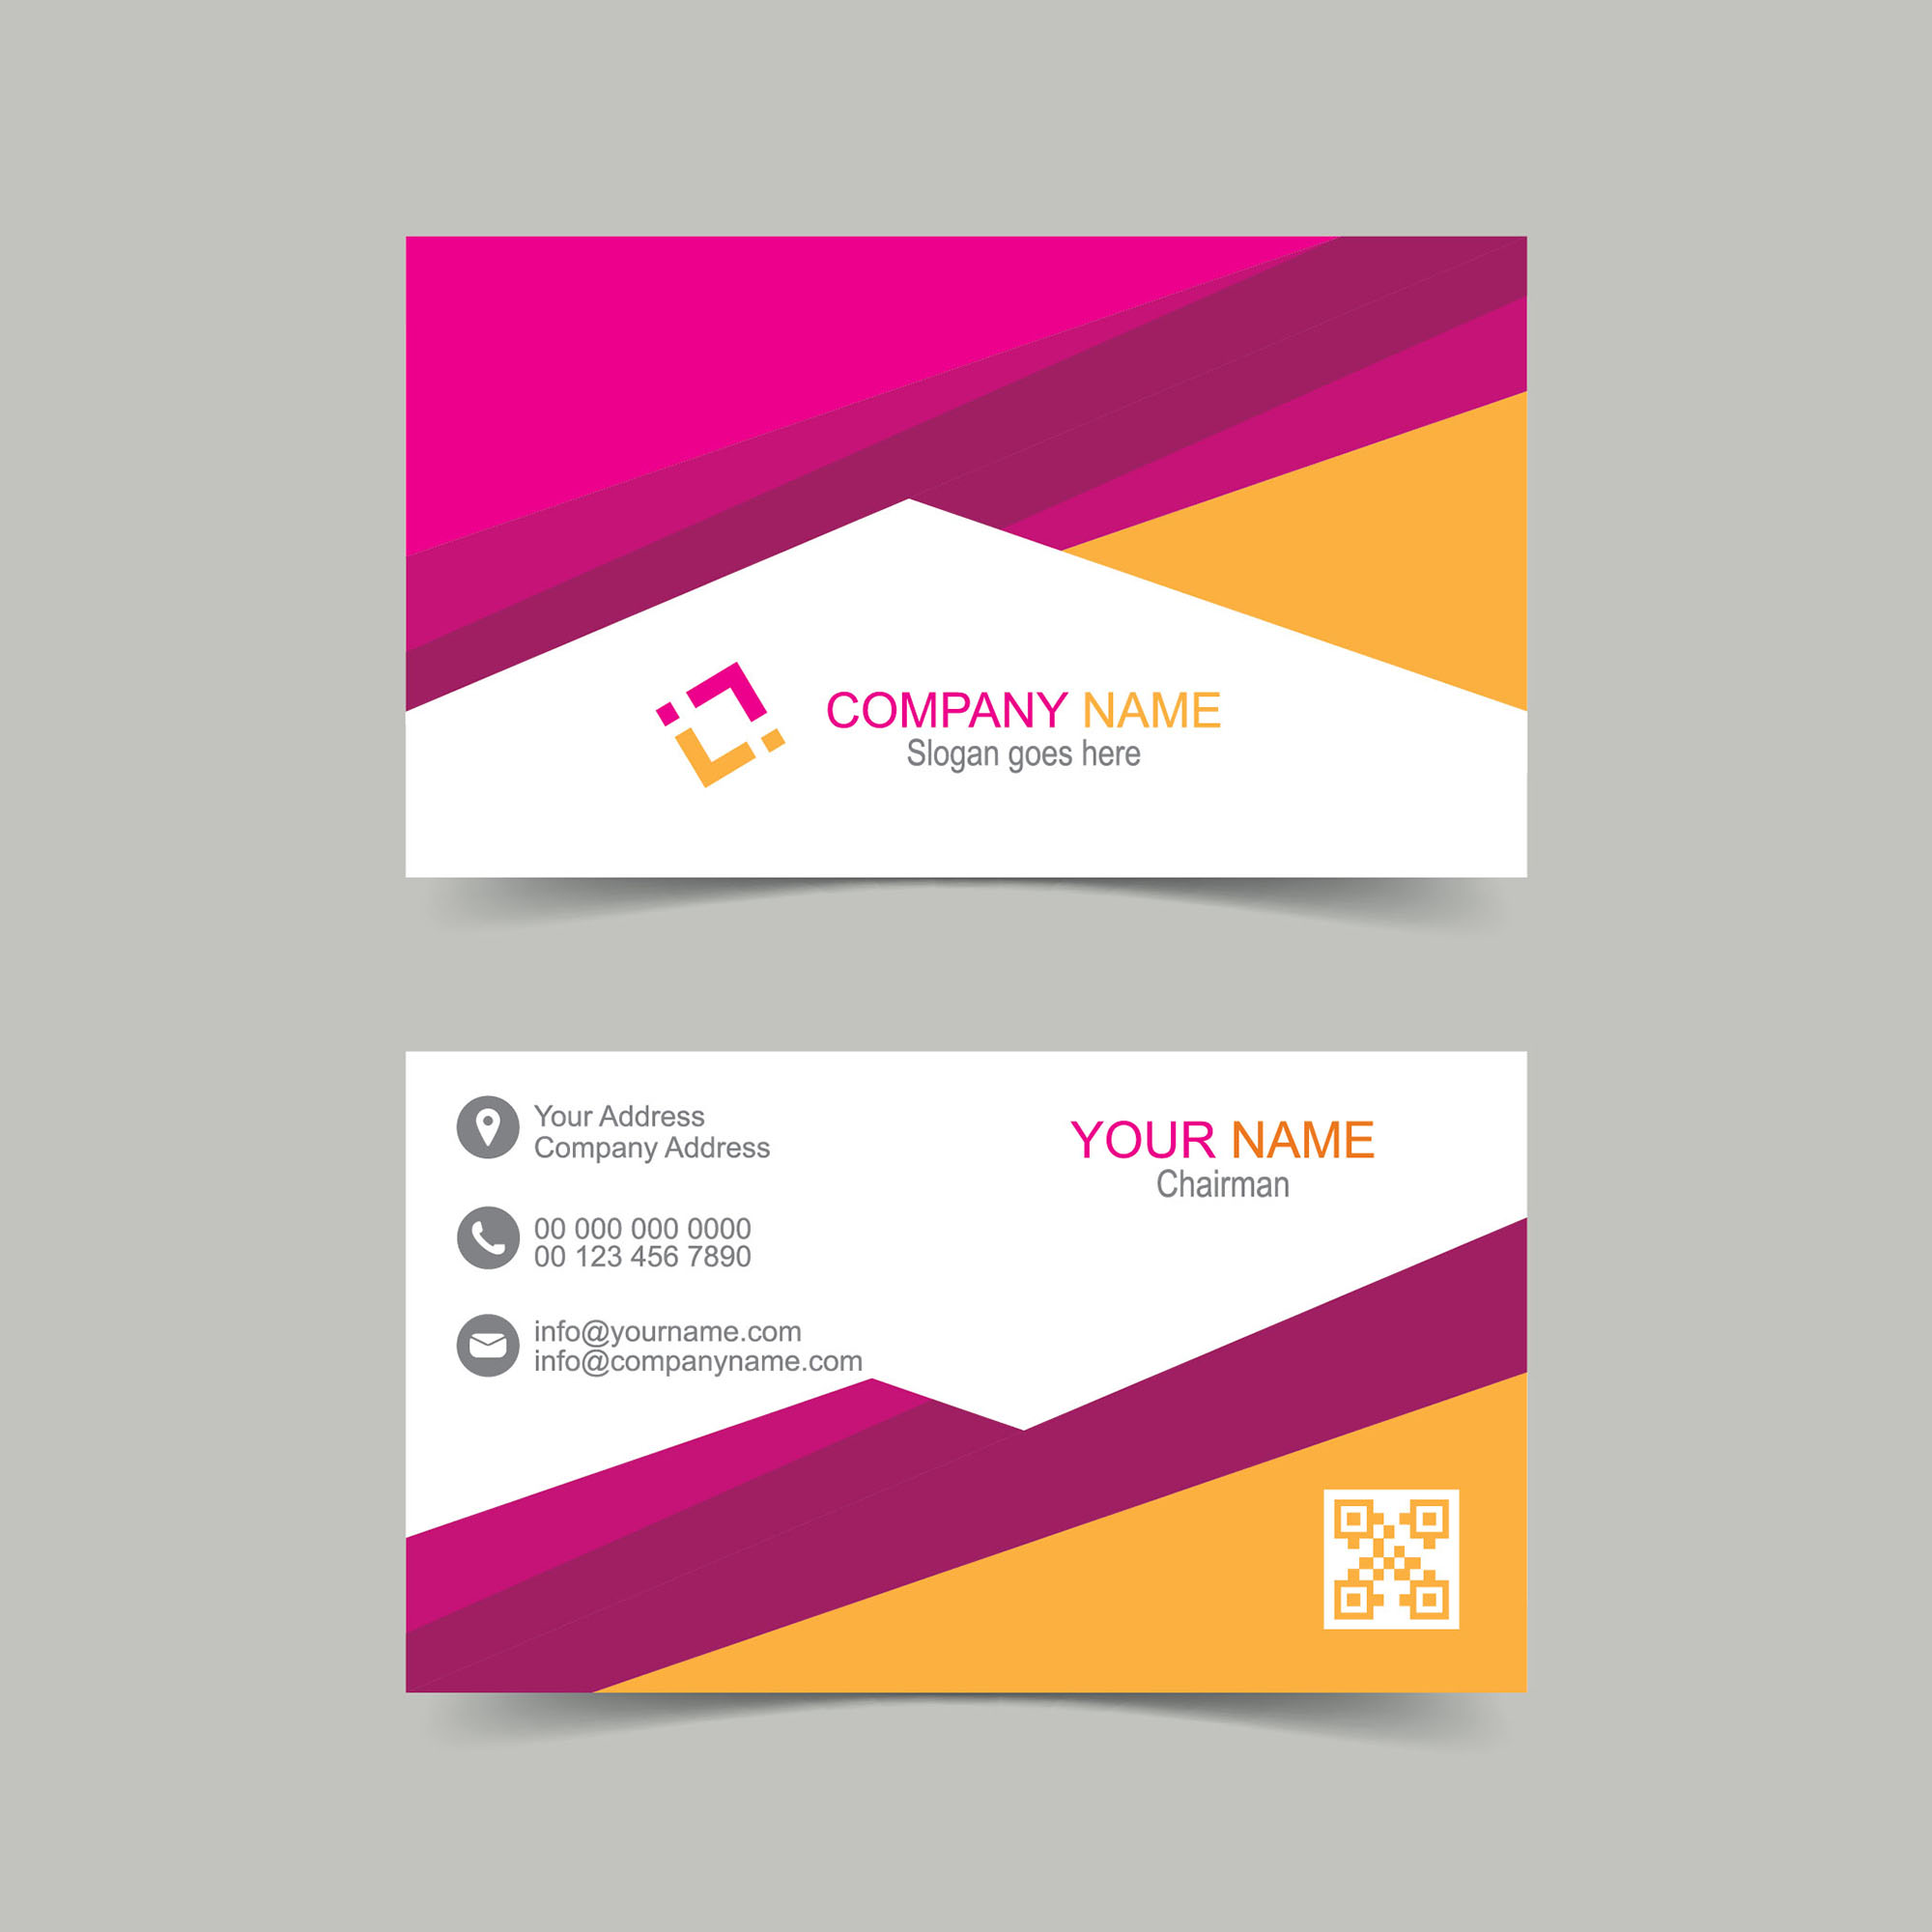 Vector business card design free download wisxi business card business cards business card design business card template design templates accmission Choice Image